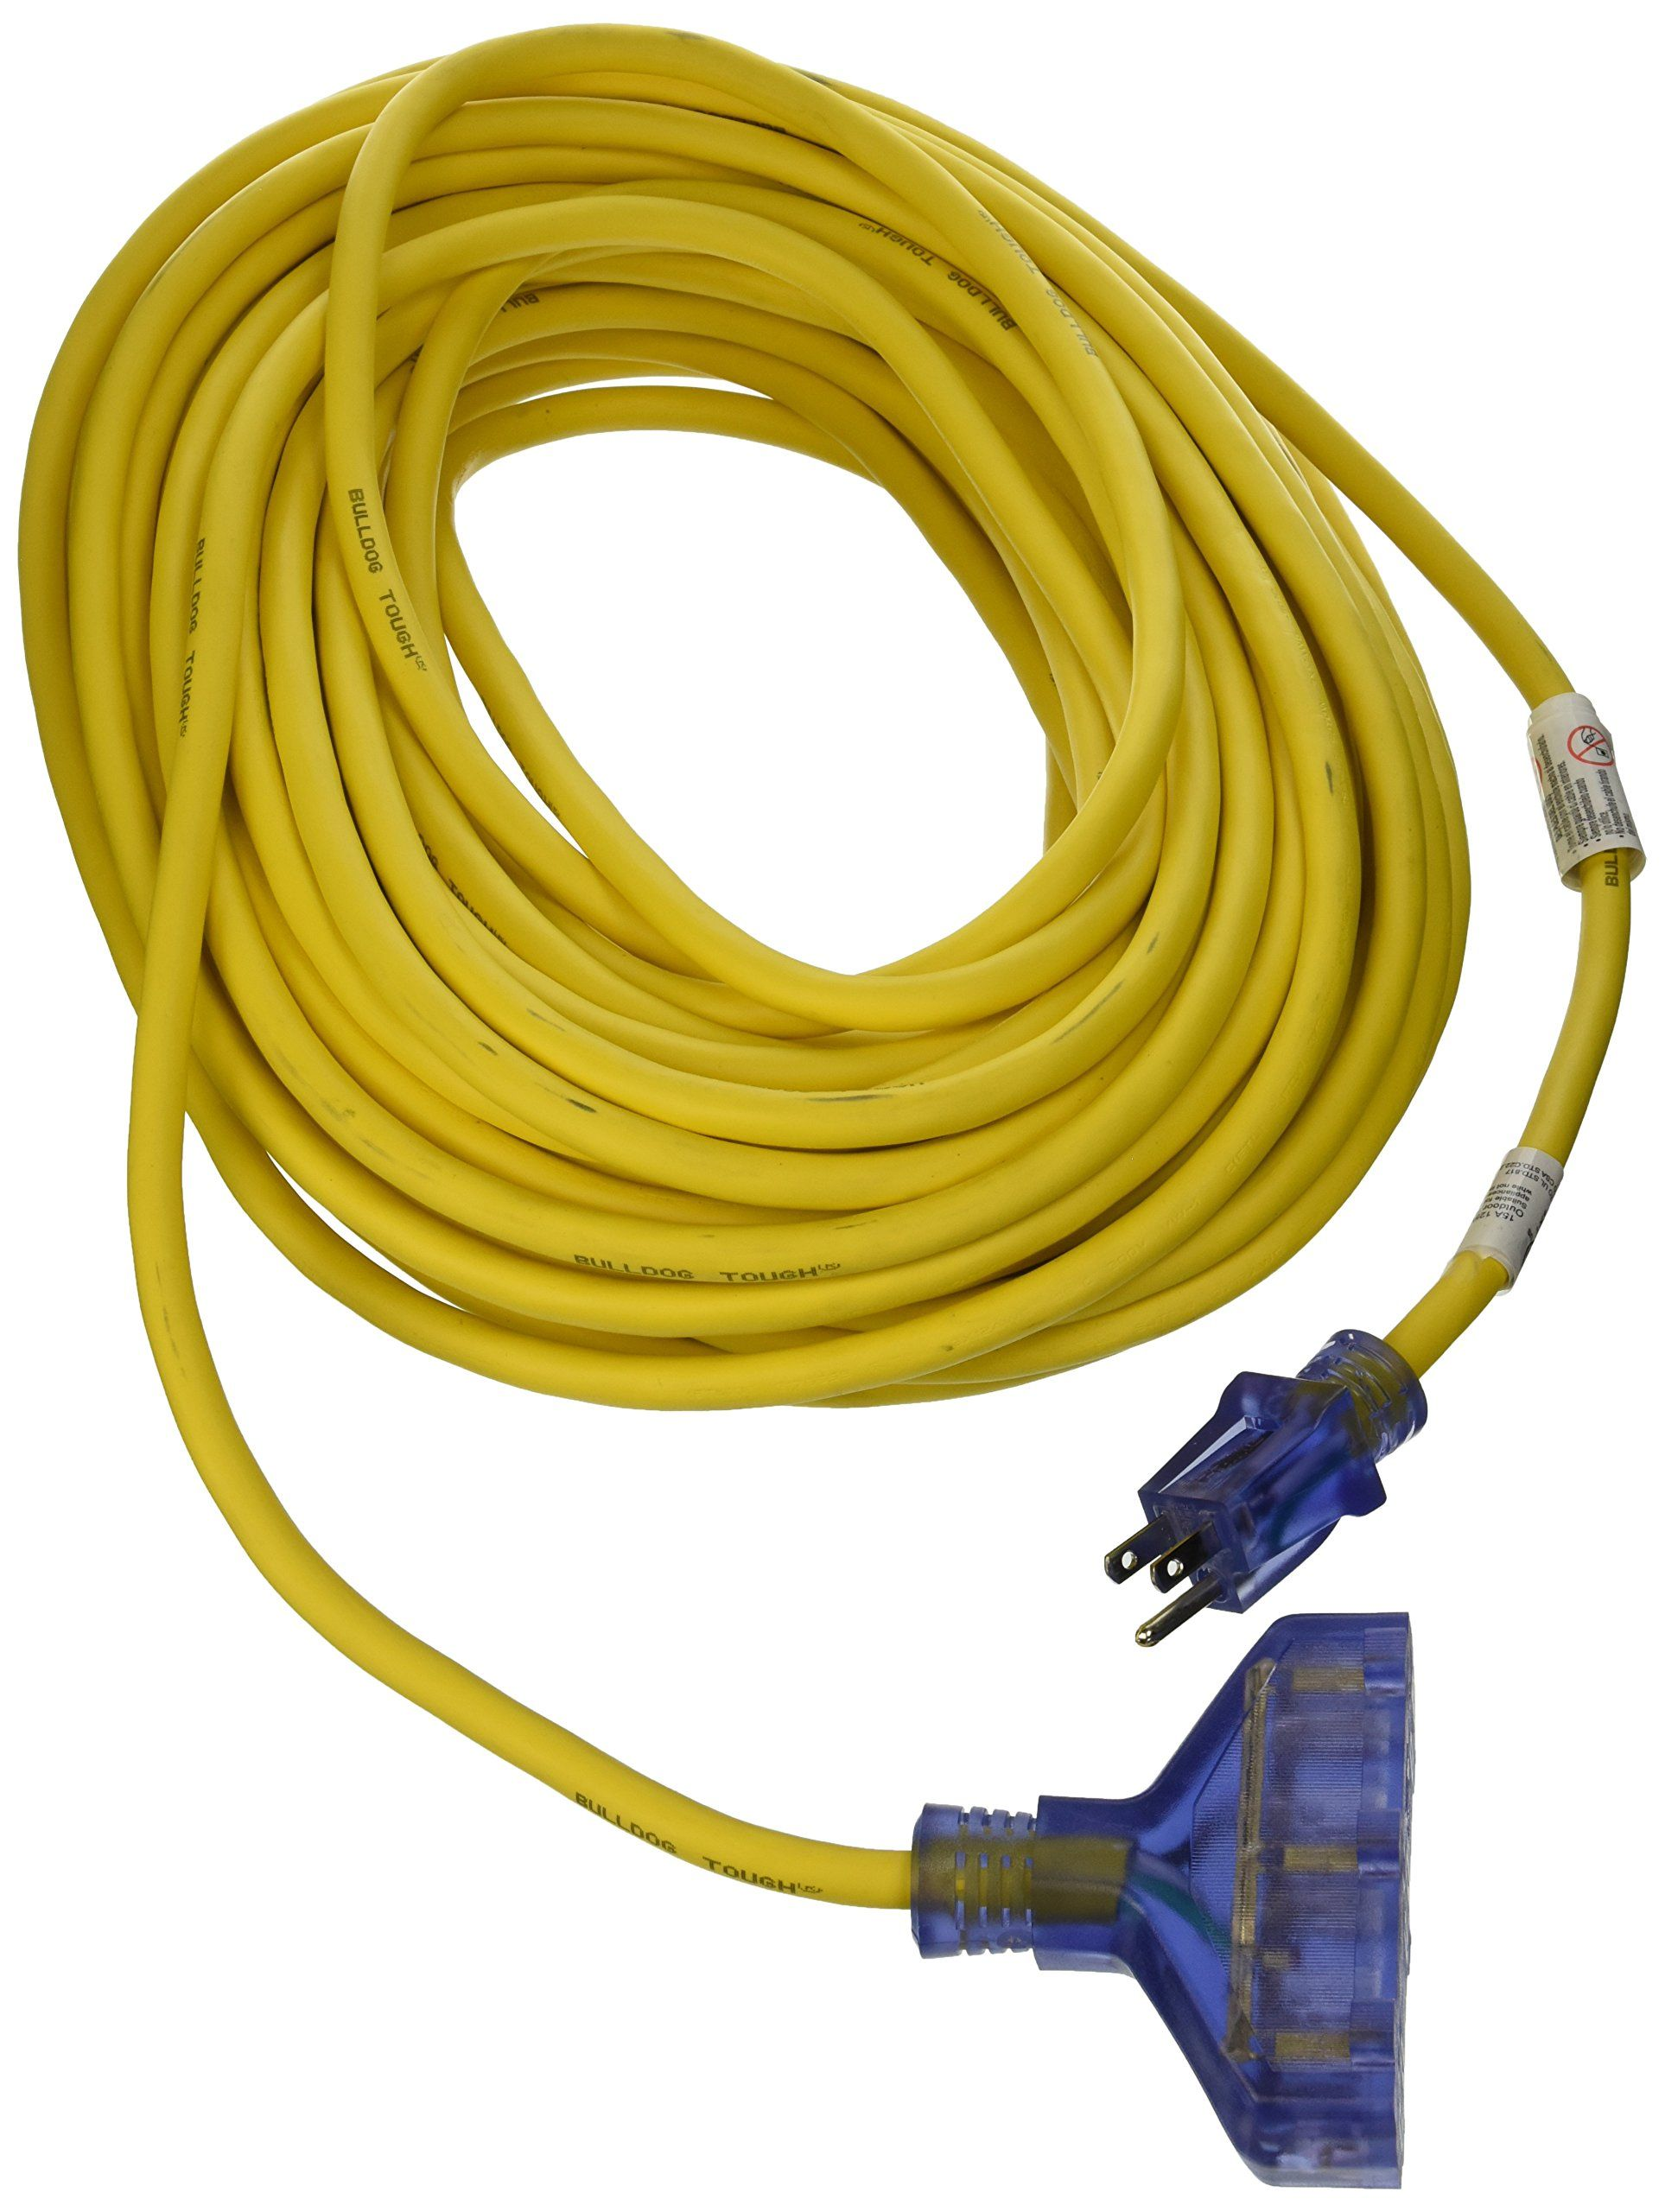 Prime Wire And Cable Lt611835 100foot 12 3 Sjtow Bulldog Tough Heavy Duty Tripletap Extension Cord With Extension Cord Outdoor Extension Cord Indicator Lights